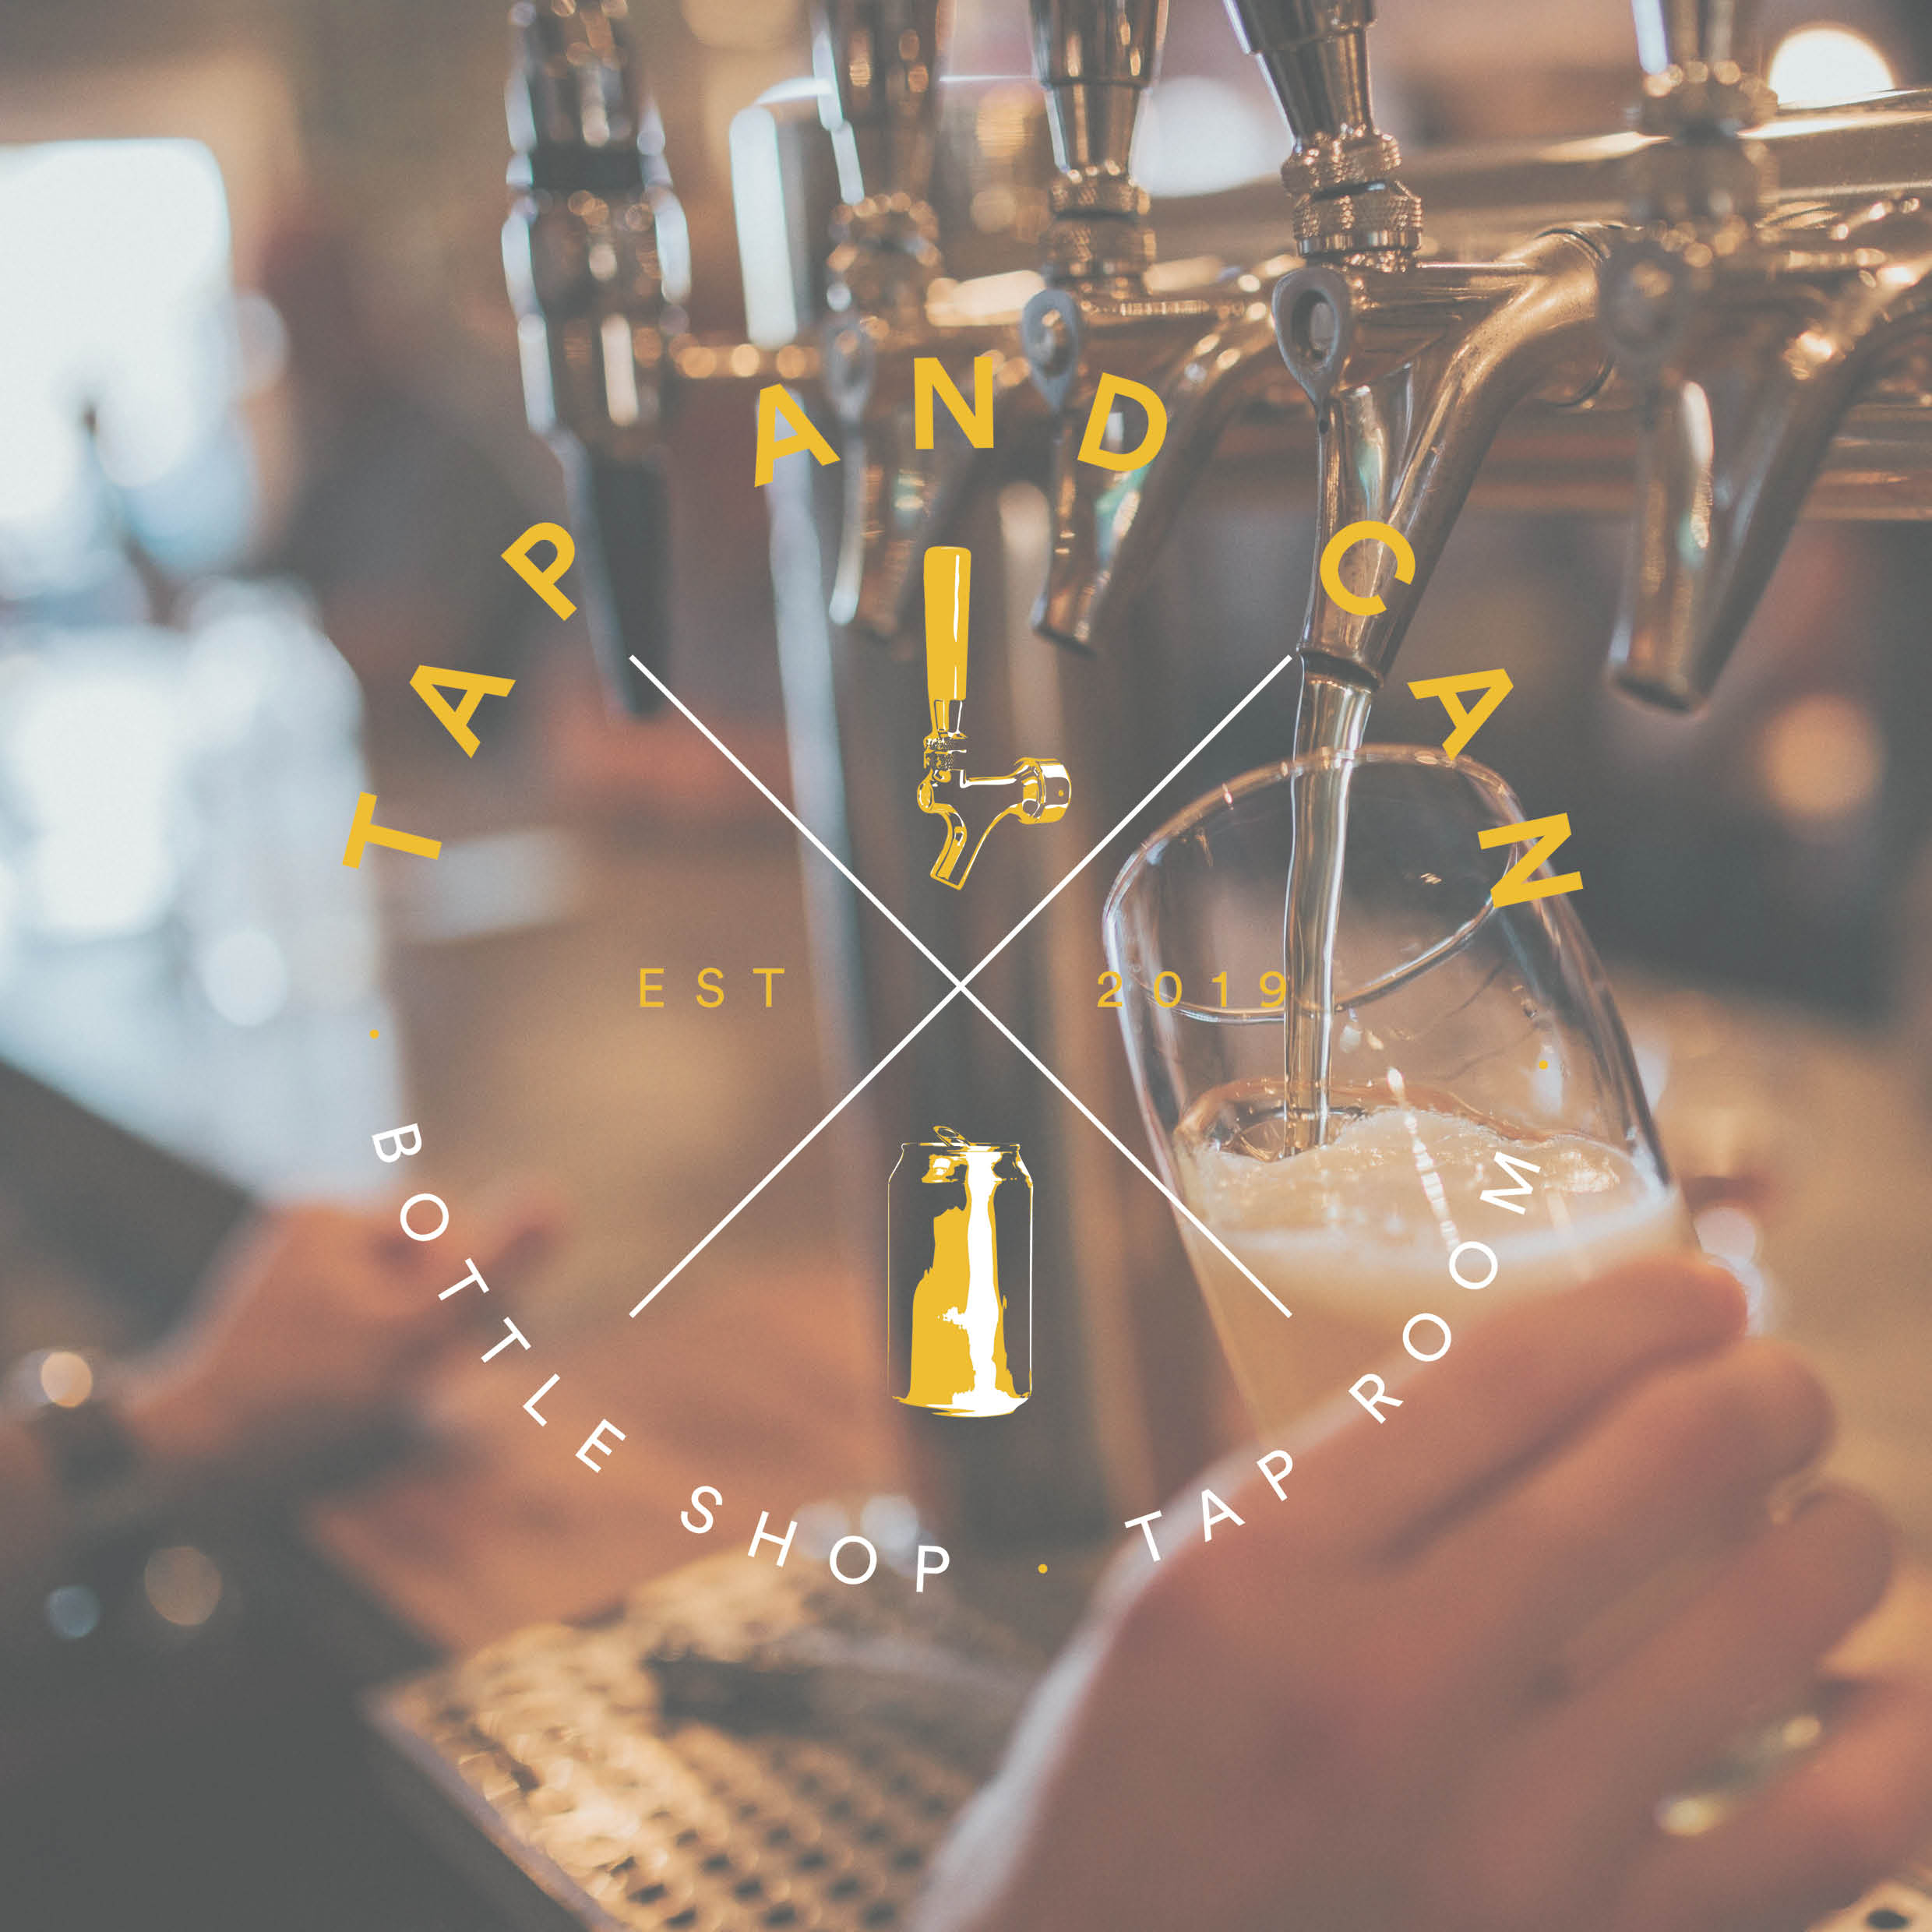 Tap & Can is an exciting new craft ale bar coming to Shrewsbury. We have worked with them to understand their concept and vision and create their branding.